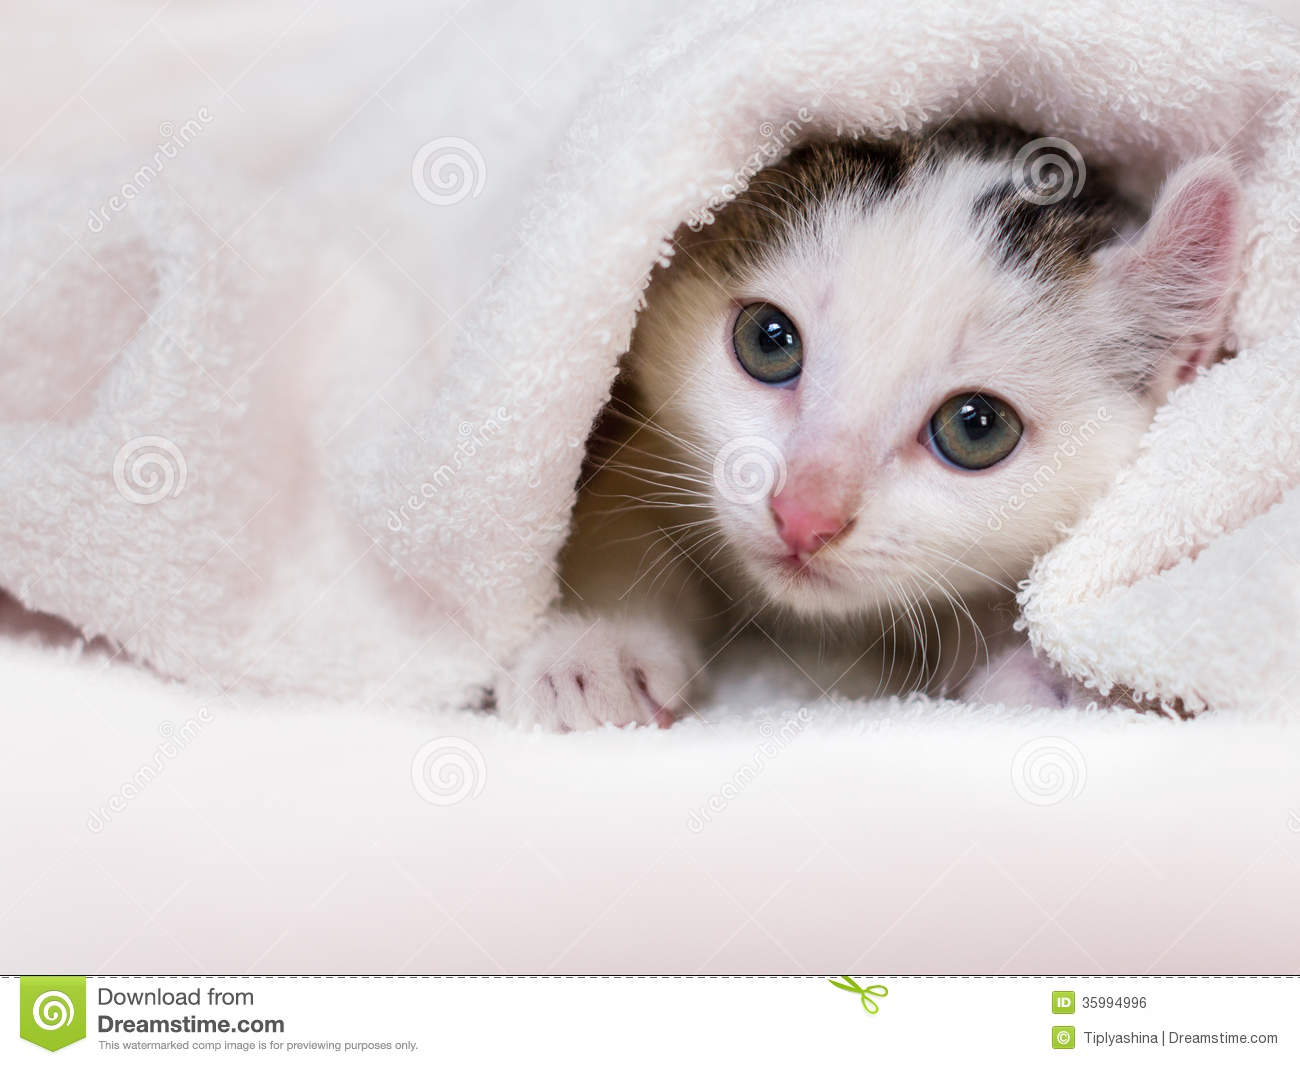 Kitten Nestled Against A White Towel Royalty Free Stock Image.